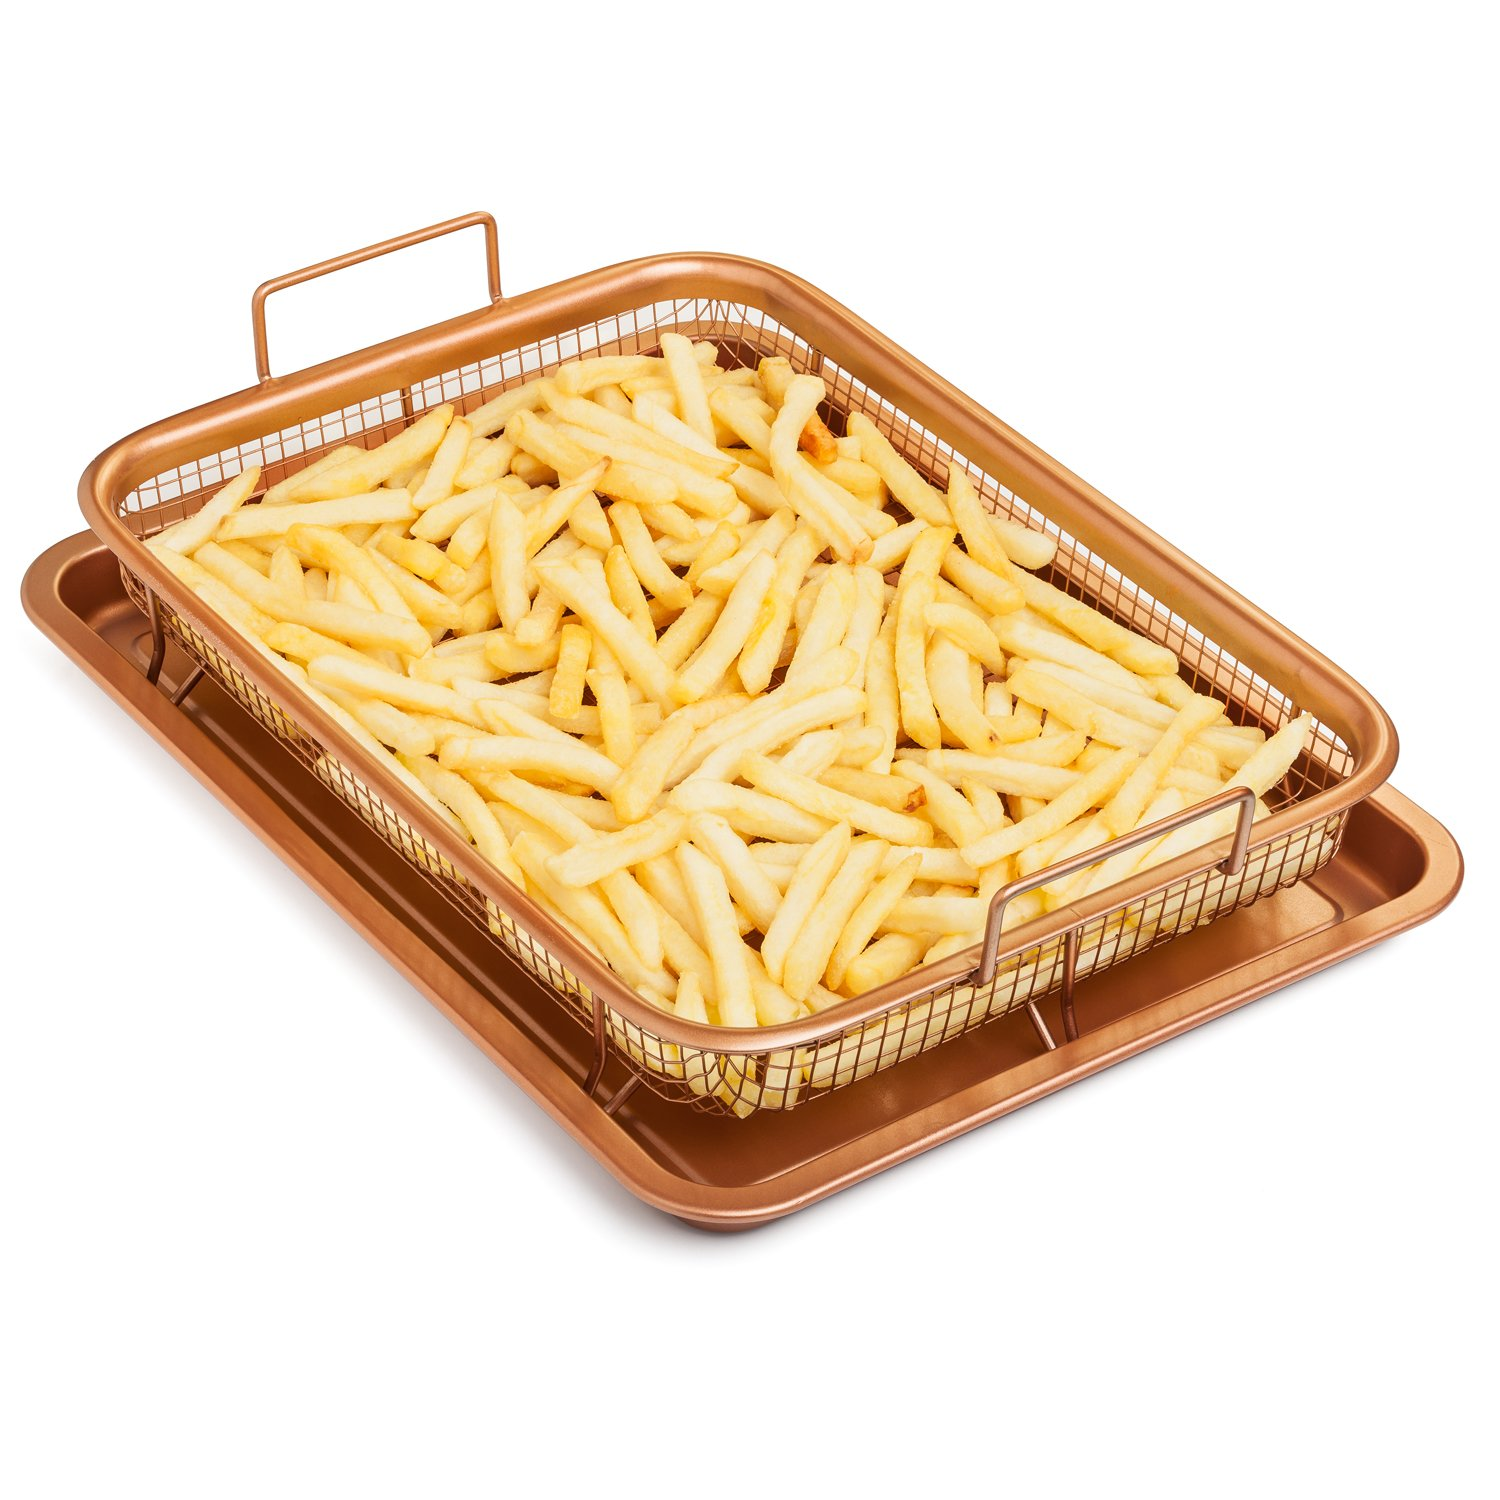 Chef's Star Copper Crisper Tray - Ceramic Coated Cookie Tray & Mesh Nonstick Basket - Healthy Oil Free Air Frying Option For Chicken, French Fries, Onion Rings & More